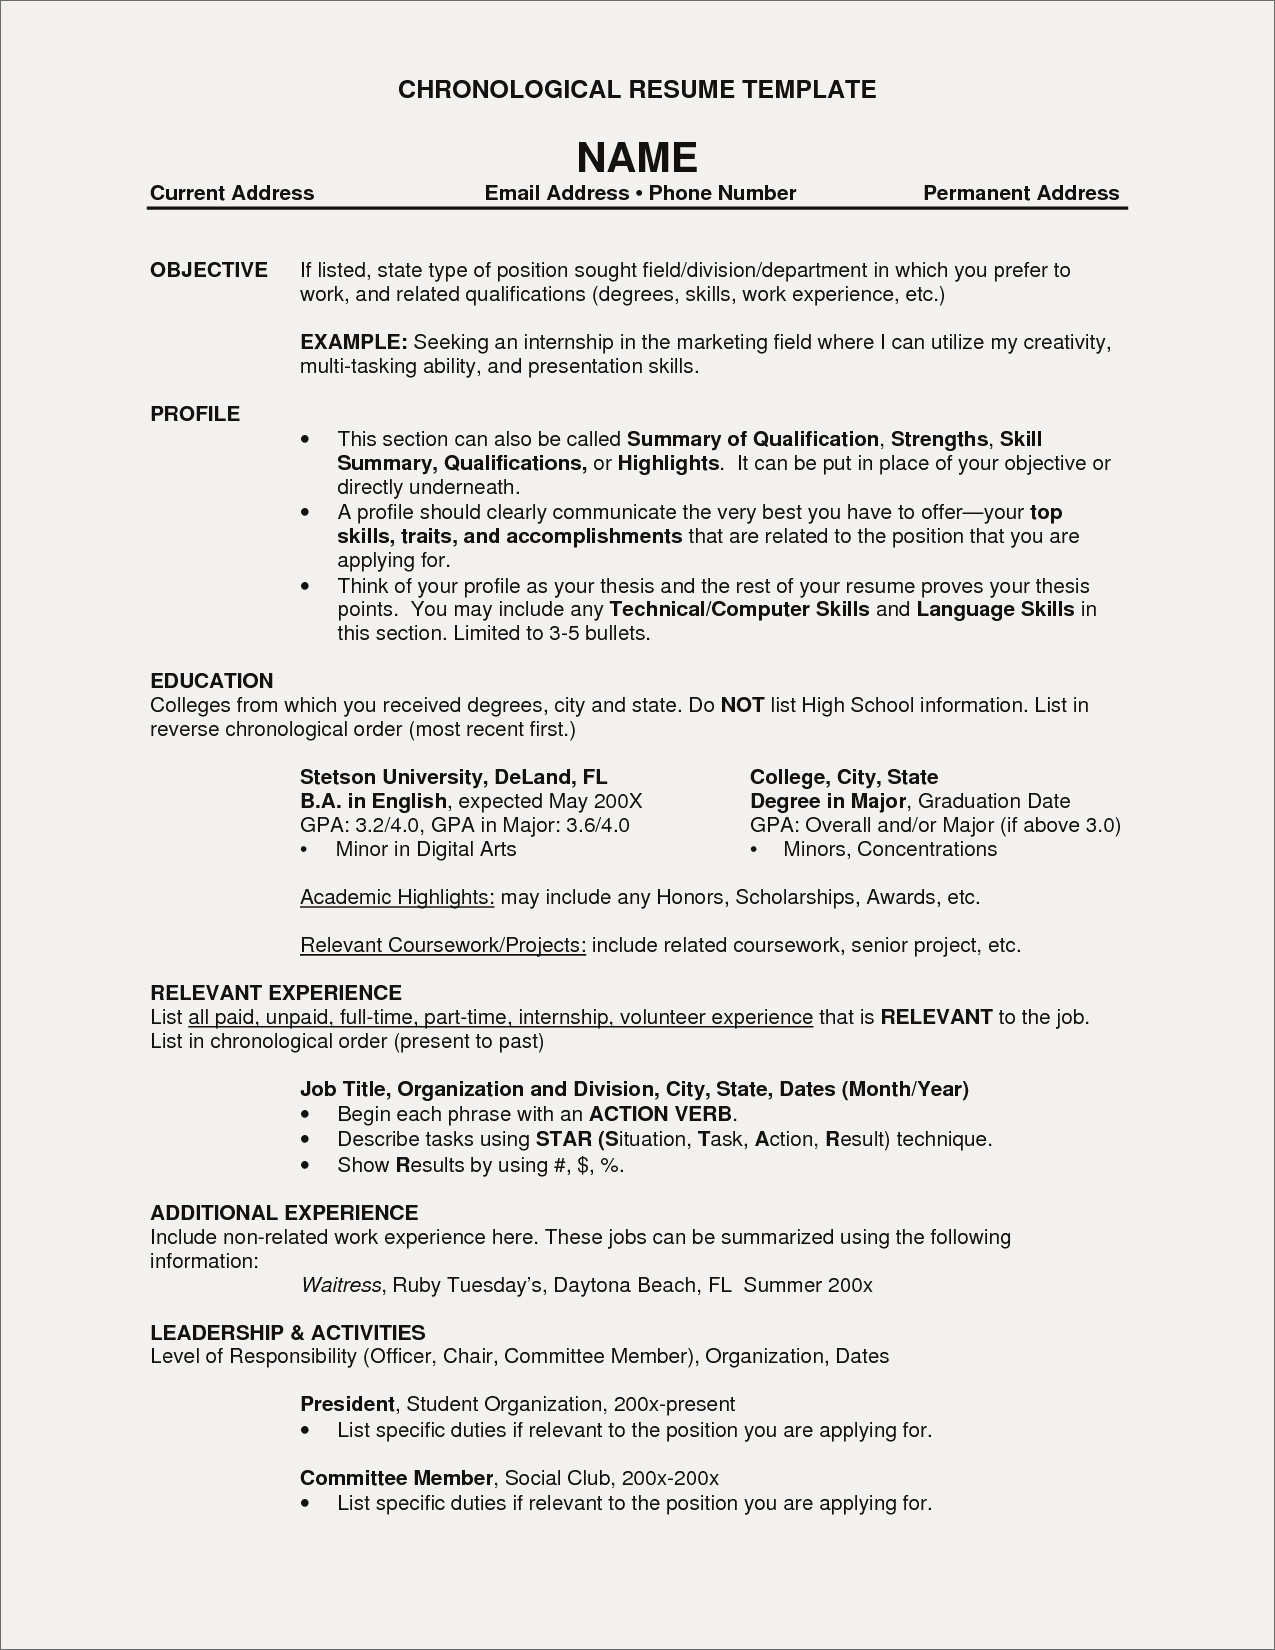 Resume for Marketing Job - Education Resume Example Inspirational Lovely Fresh Free Resume